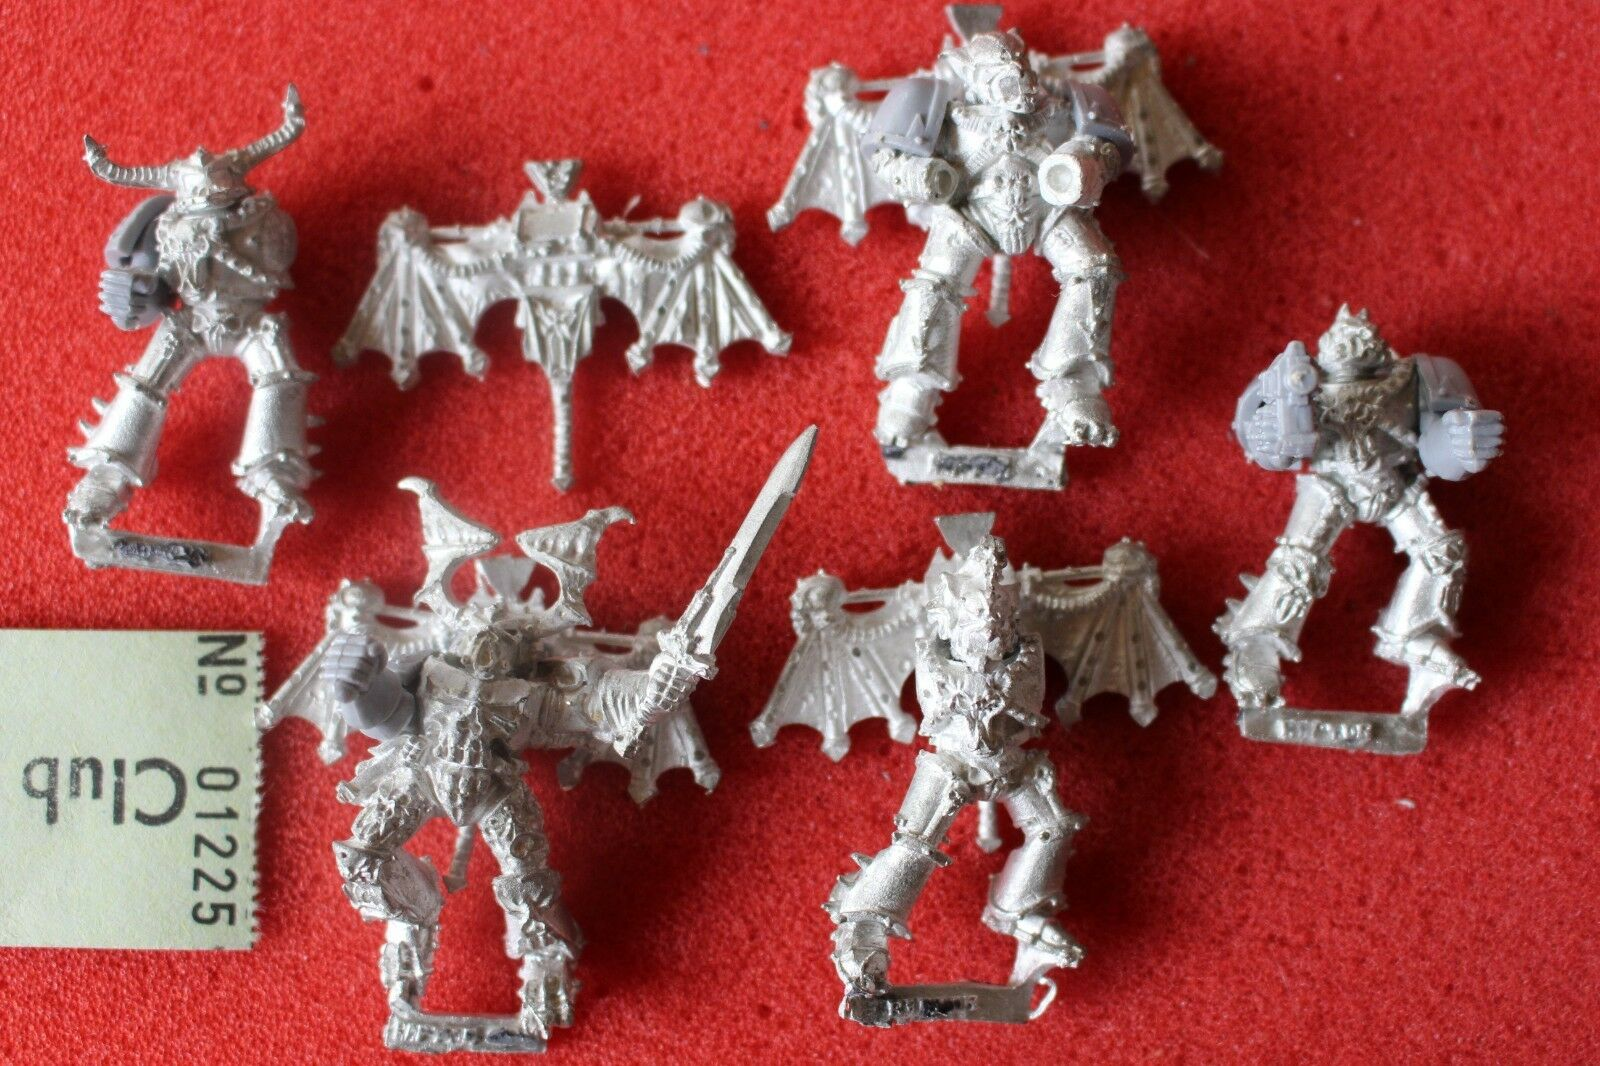 Games Workshop Warhammer 40k Chaos Space Marines Night Lord Raptor Raptors Metal